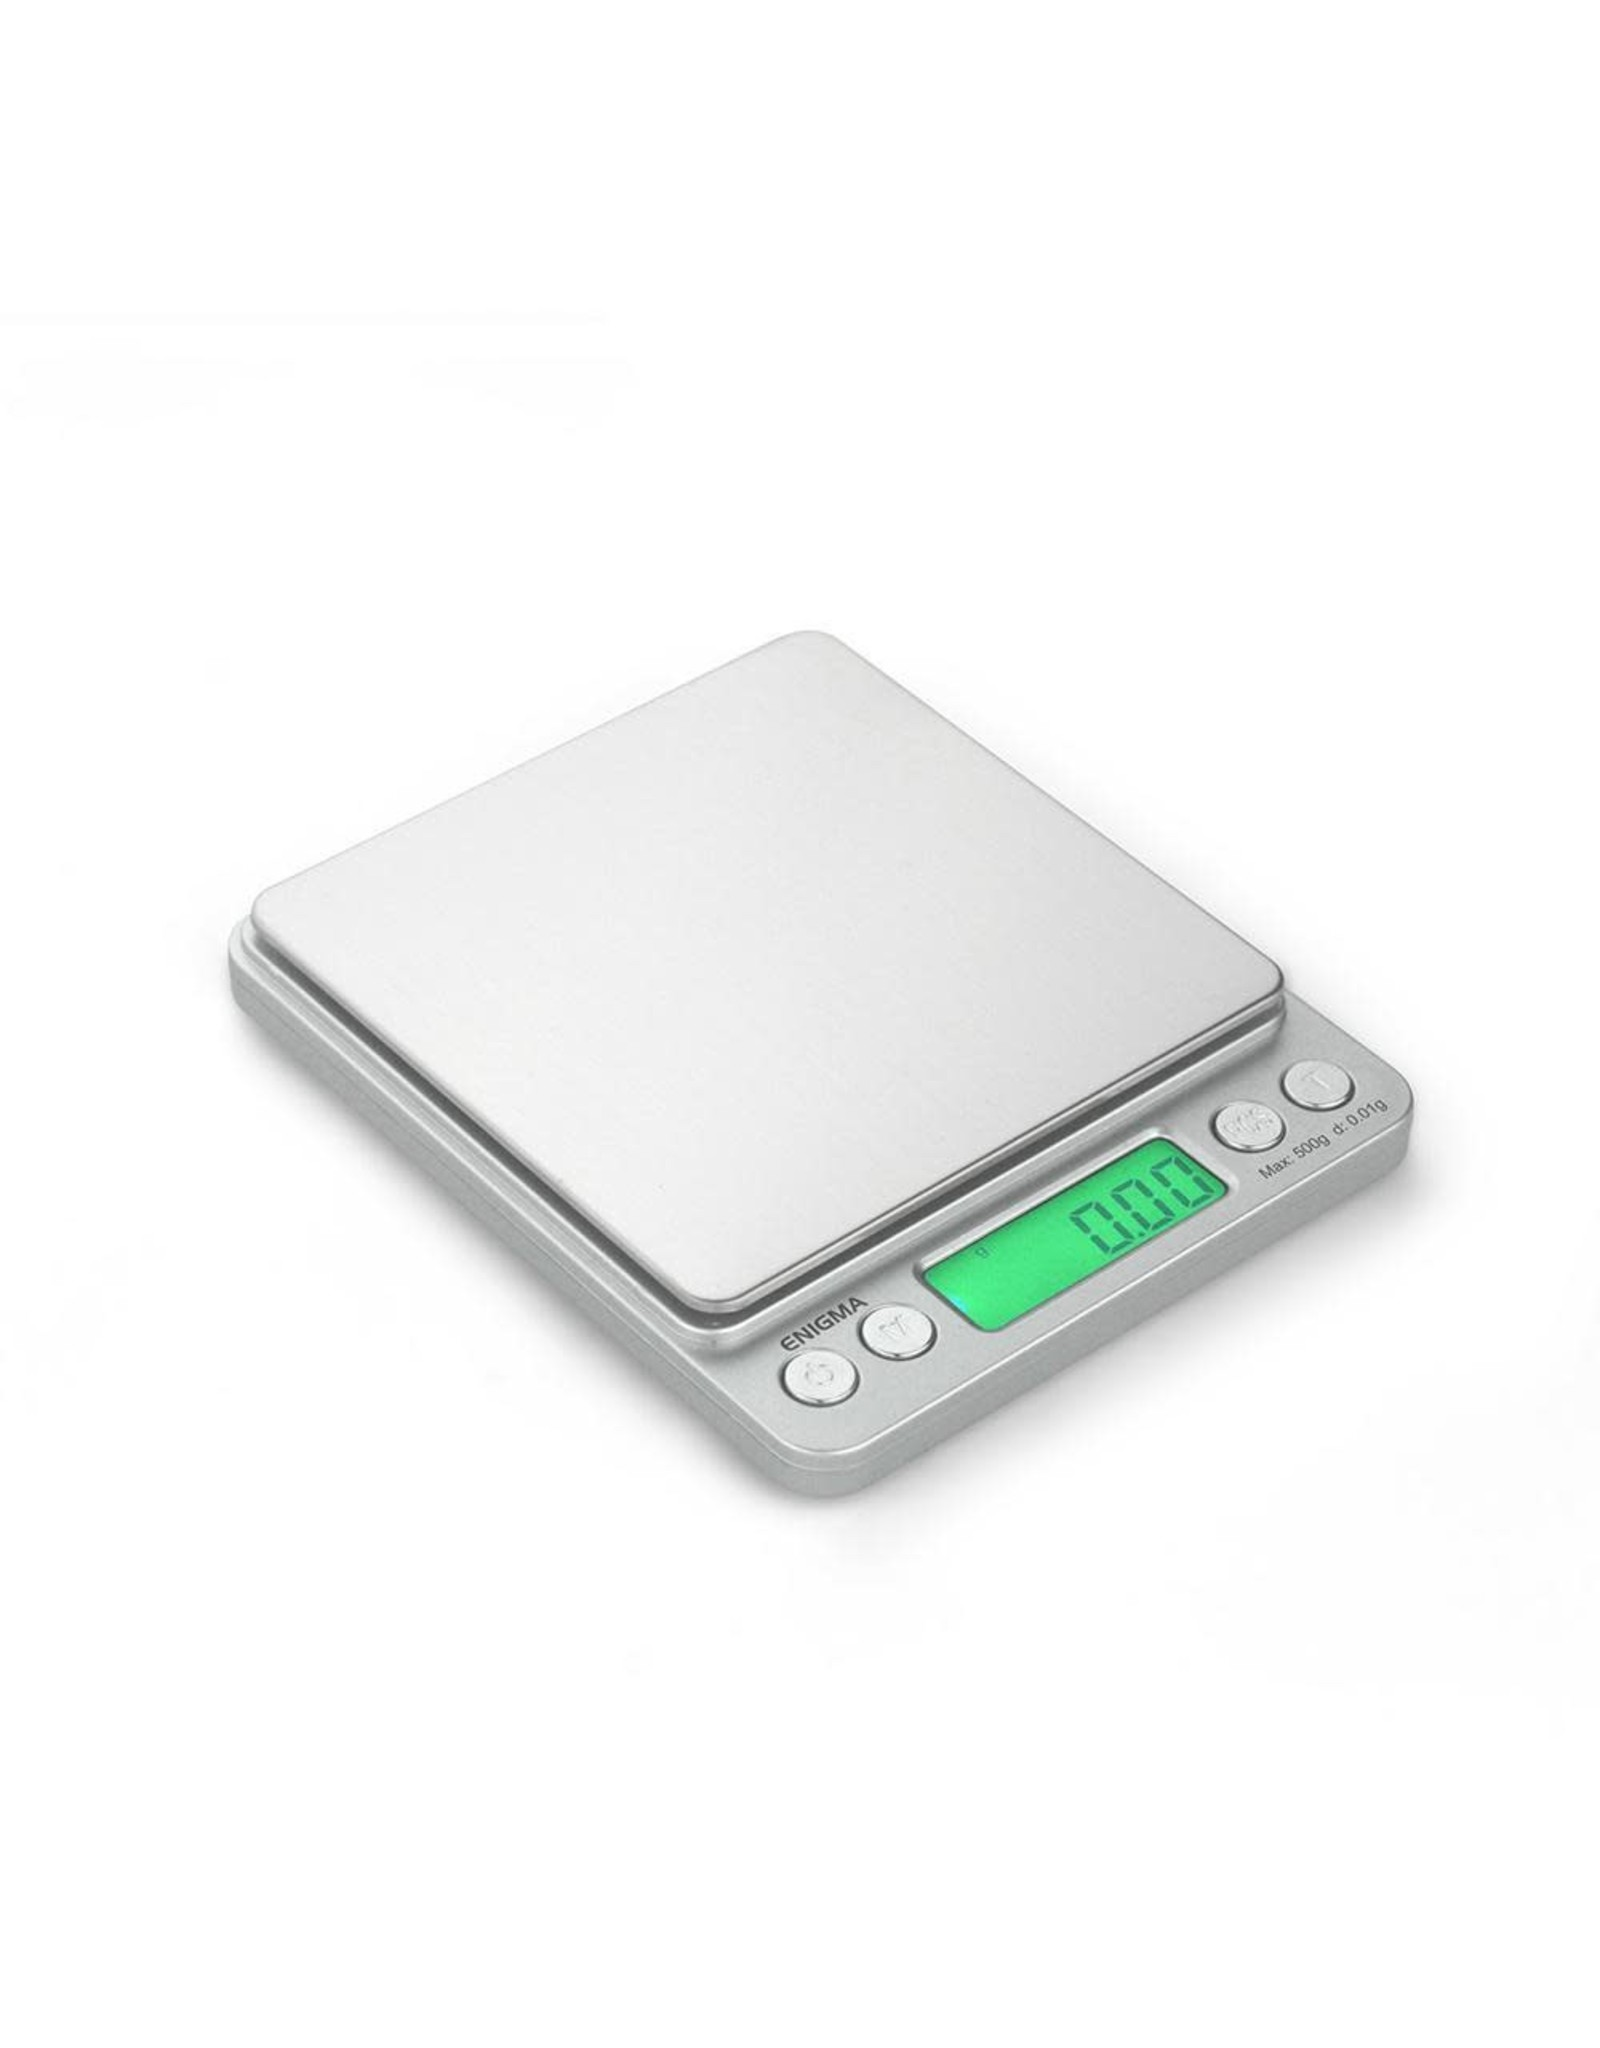 truweigh Truweigh Enigma Digital Mini Scale - 500g x 0.01g / Silver